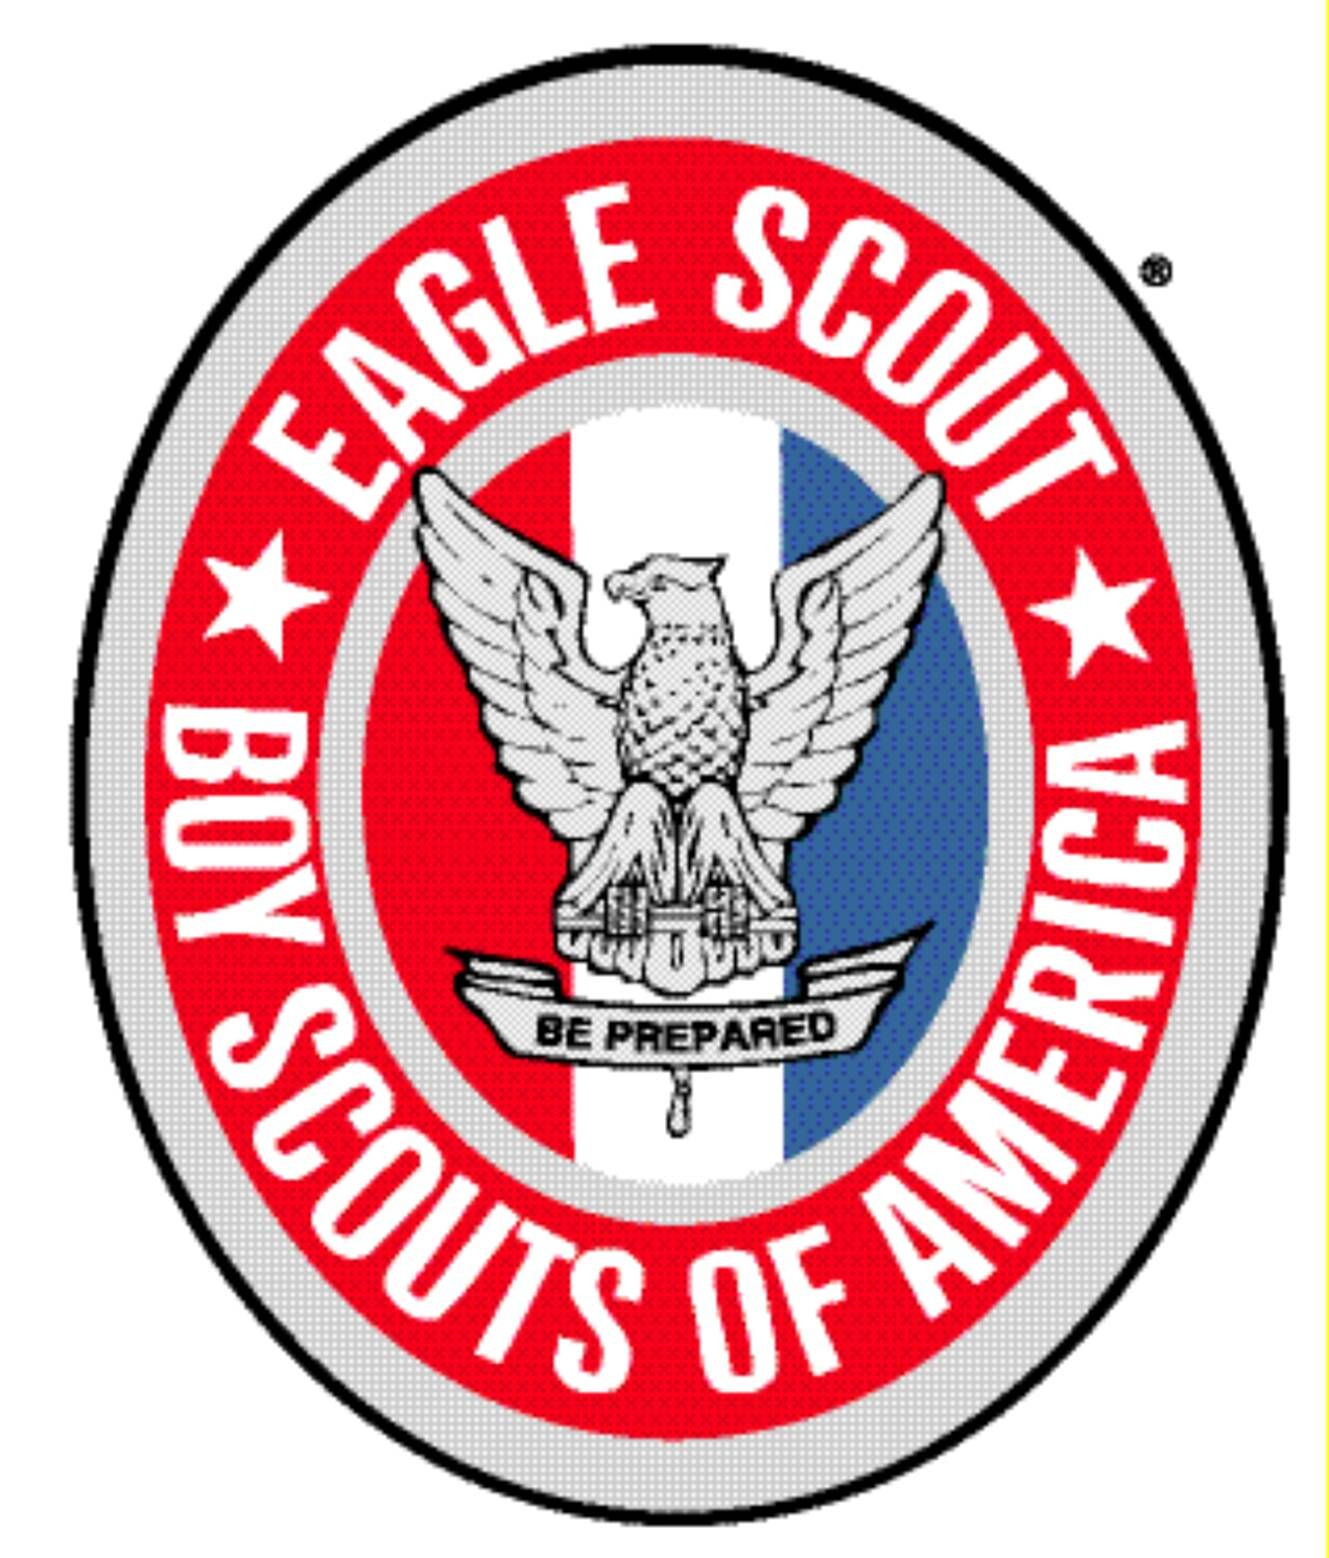 eagle scout patch clipart clipartfest 1329x1558 jpeg eagle rh pinterest com eagle scout clipart images boy scout clipart black and white